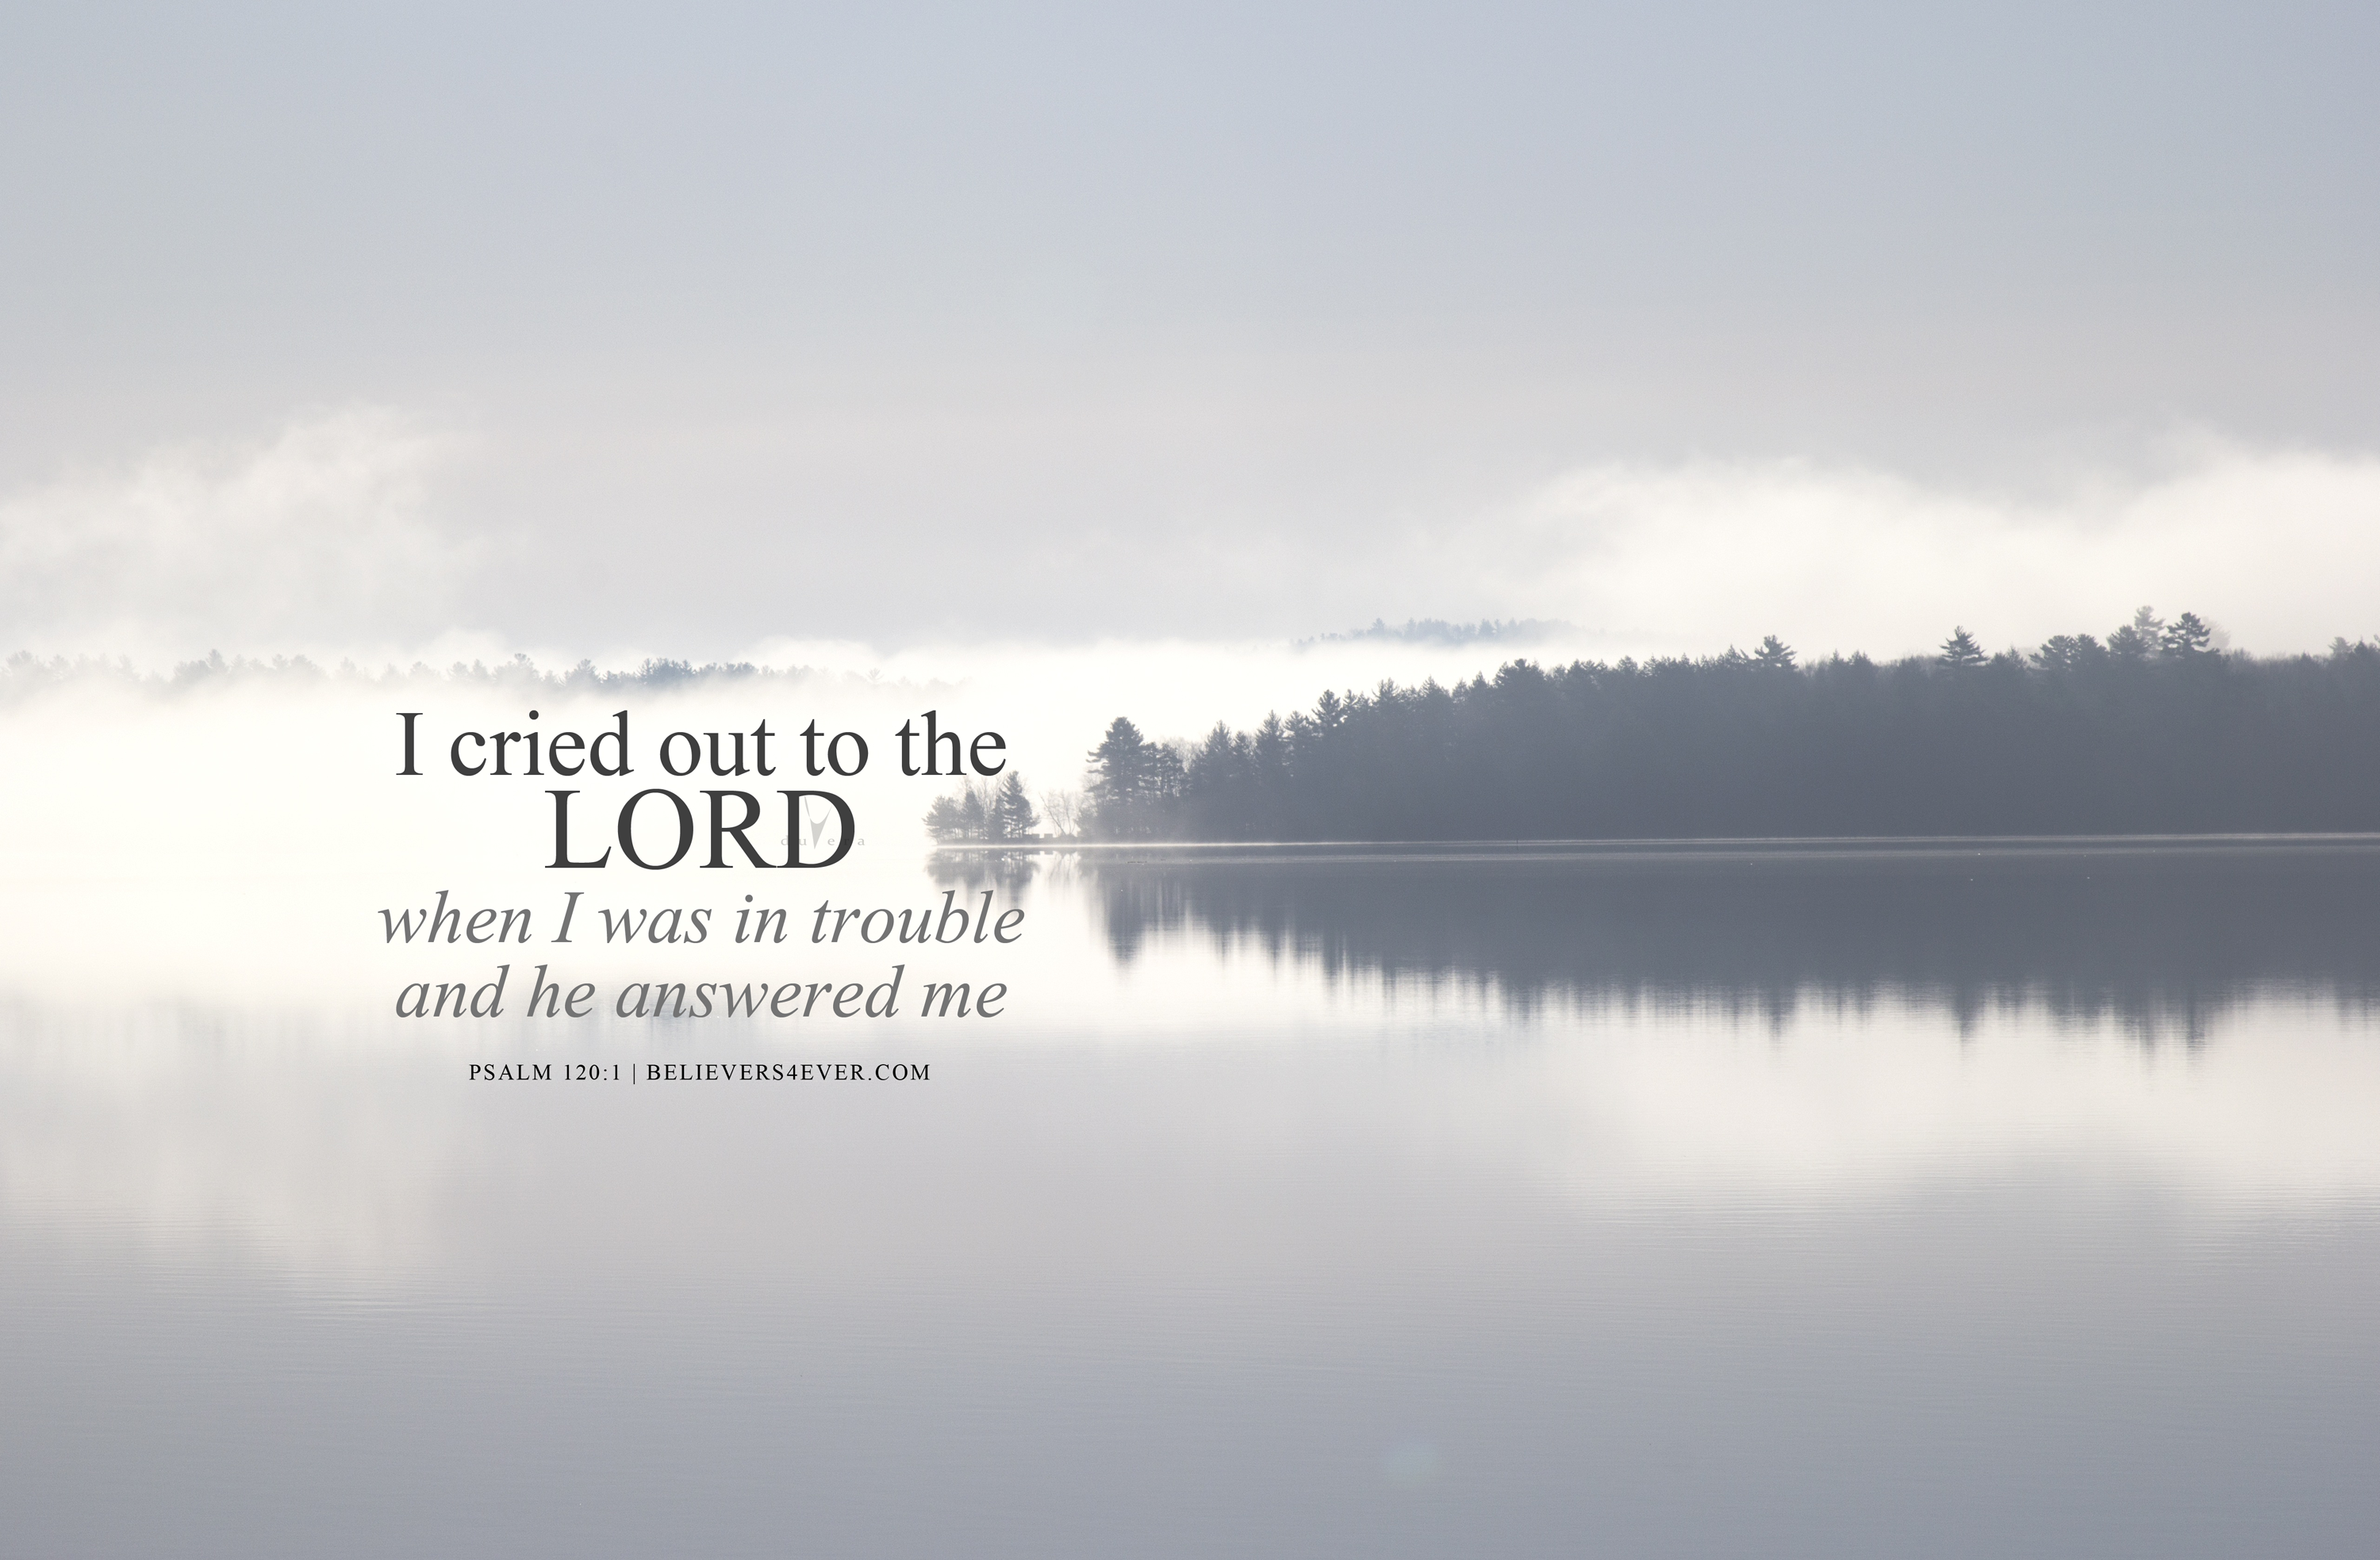 christian desktop wallpaper with bible verse use for church sermons and more i cried